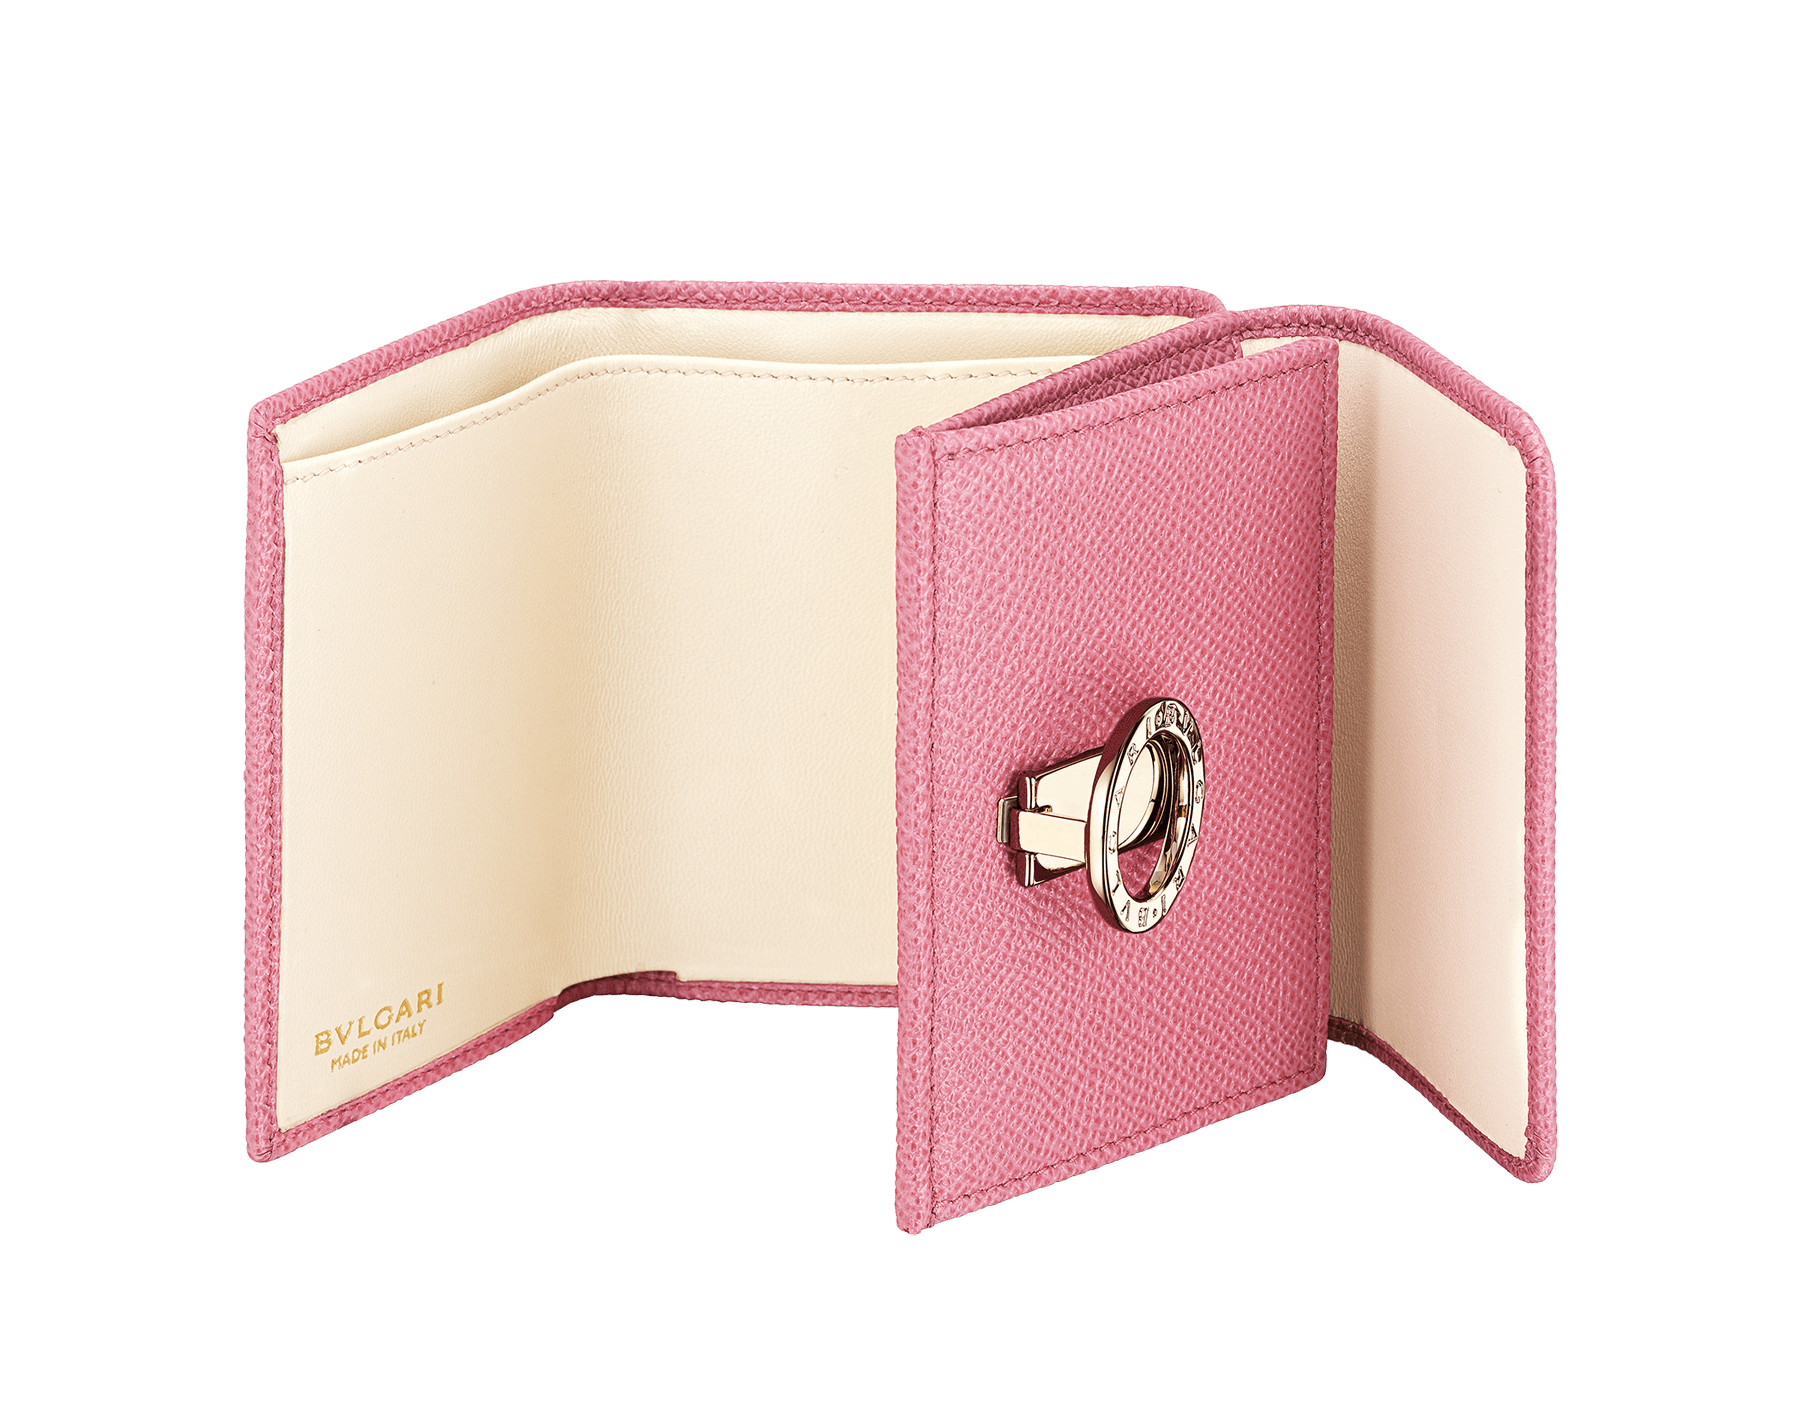 BVLGARI BVLGARI compact wallet in mint bright grain calf leather and taffy quartz nappa leather. Iconic logo clip closure in light gold plated brass on the flap and a press stud closure on the body. 579-MINICOMPACTb image 2